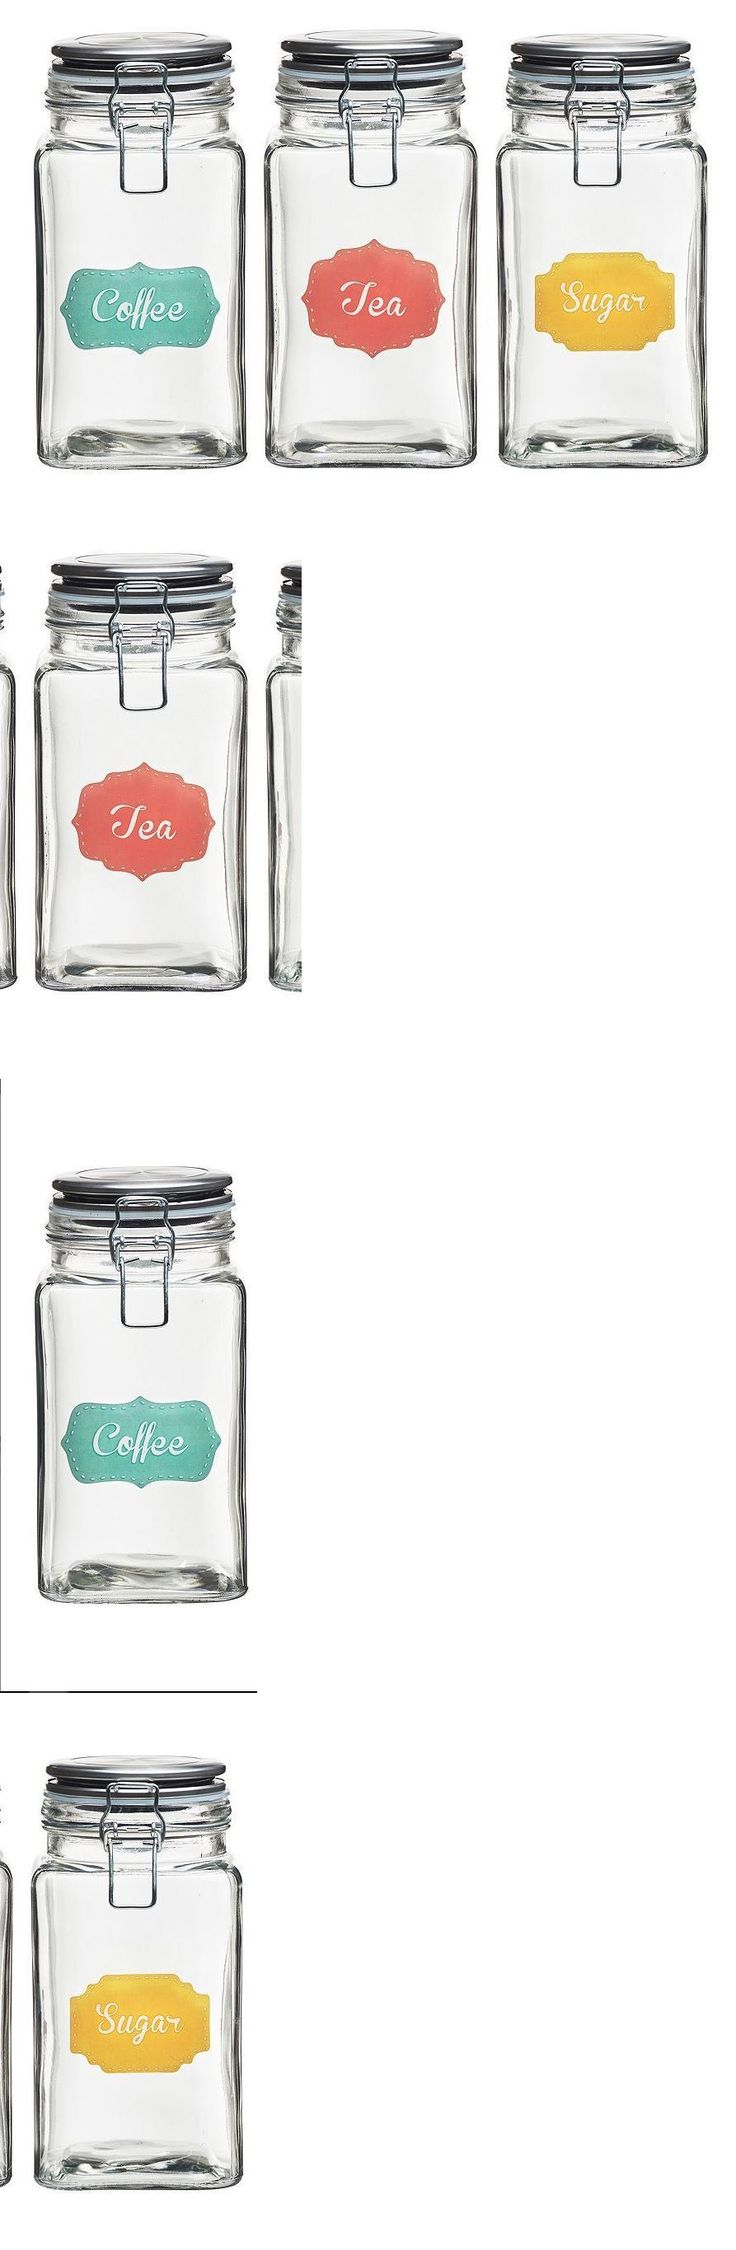 Canisters and Jars 20654: Jars Label Colors Shine 3-Pc. Hermetic Glass Storage Jar Set Coffee Tea Sugar -> BUY IT NOW ONLY: $69.99 on eBay!